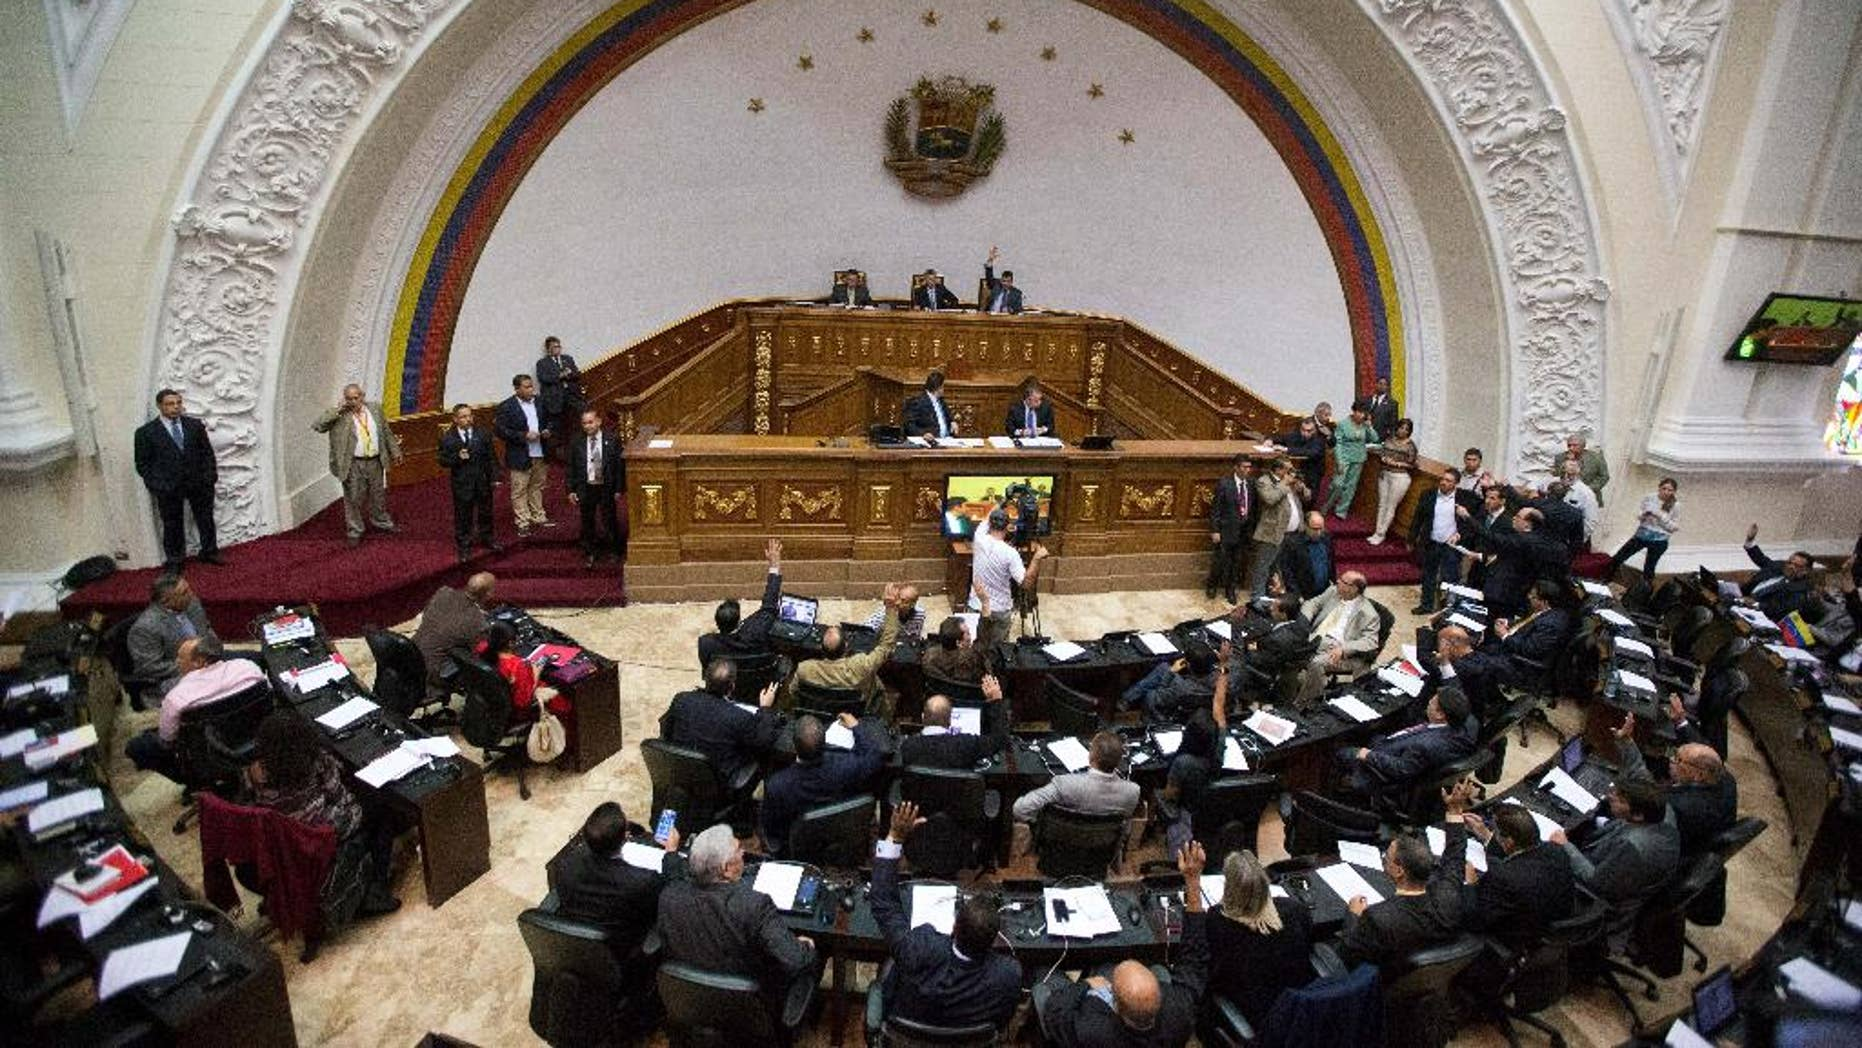 FILE - In this Jan. 6, 2016, file photo, lawmakers vote on the daily agenda during the first National Assembly session in Caracas, Venezuela. The country's attorney general said Saturday, July 30, that the National Assembly is now illegally constituted because in recent days it swore in three members who'd been ruled out by the government-friendly Supreme Court. (AP Photo/Fernando Llano, File)